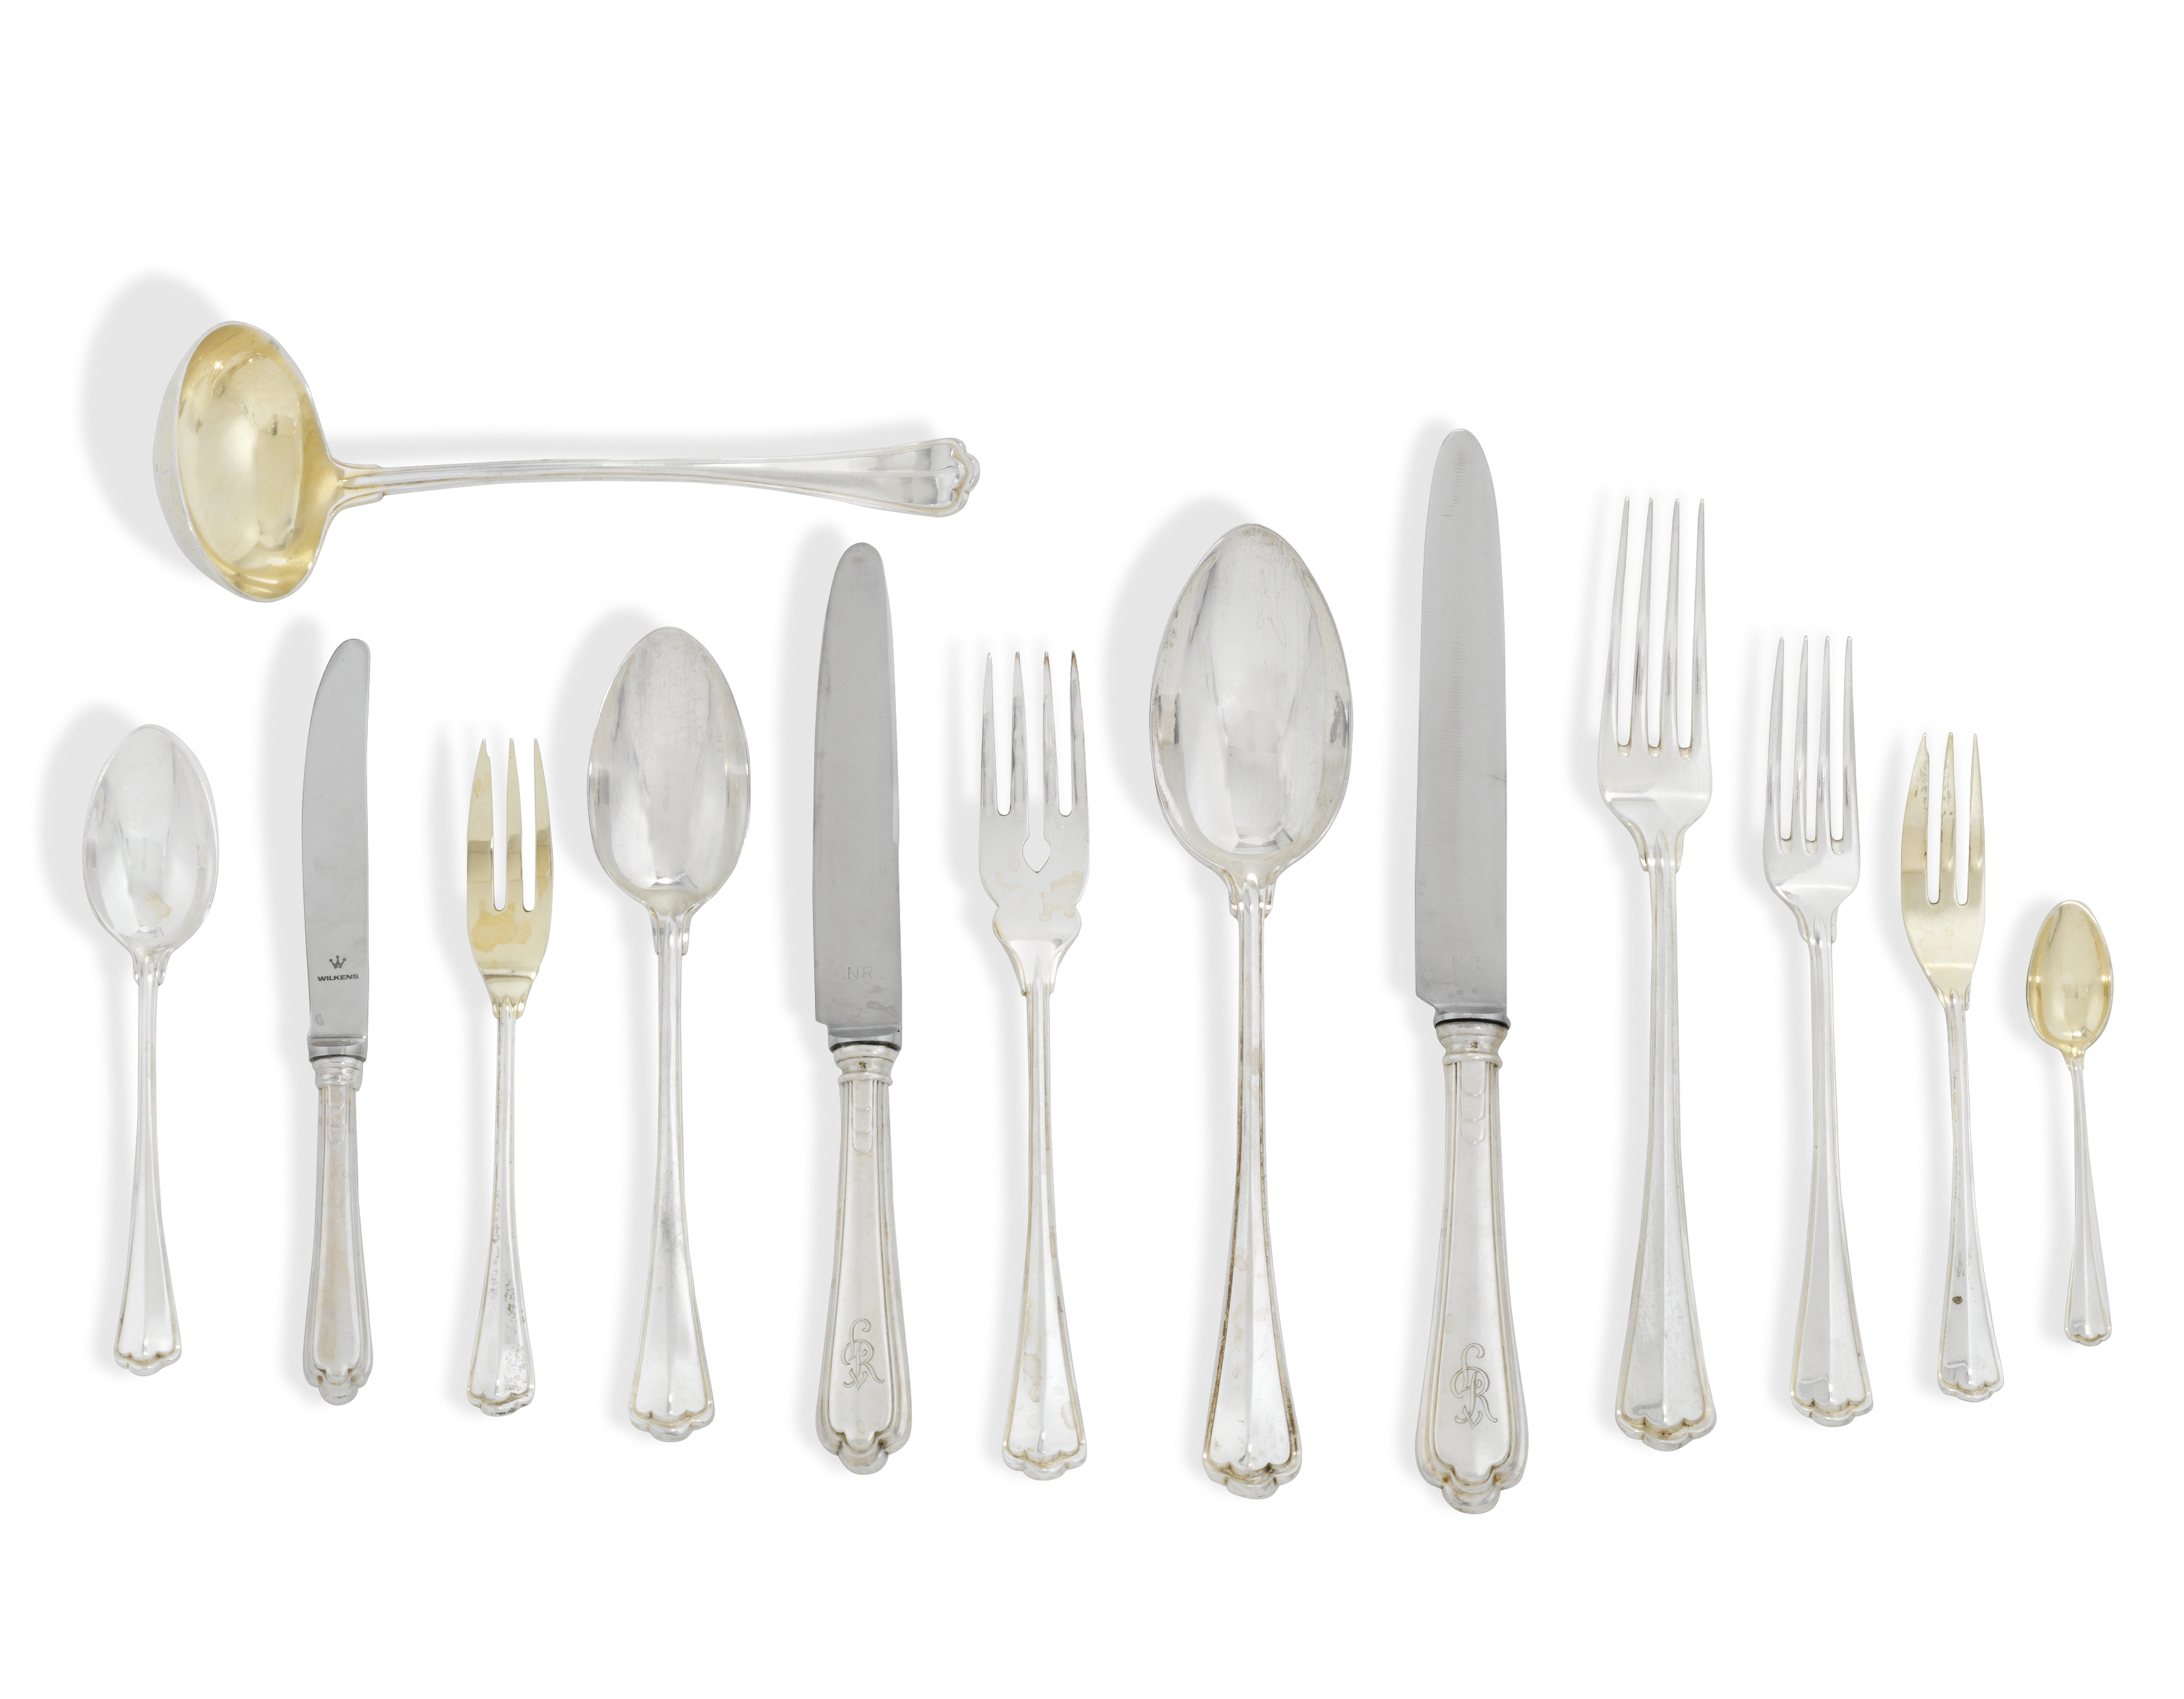 A GERMAN SILVER TABLE SERVICE